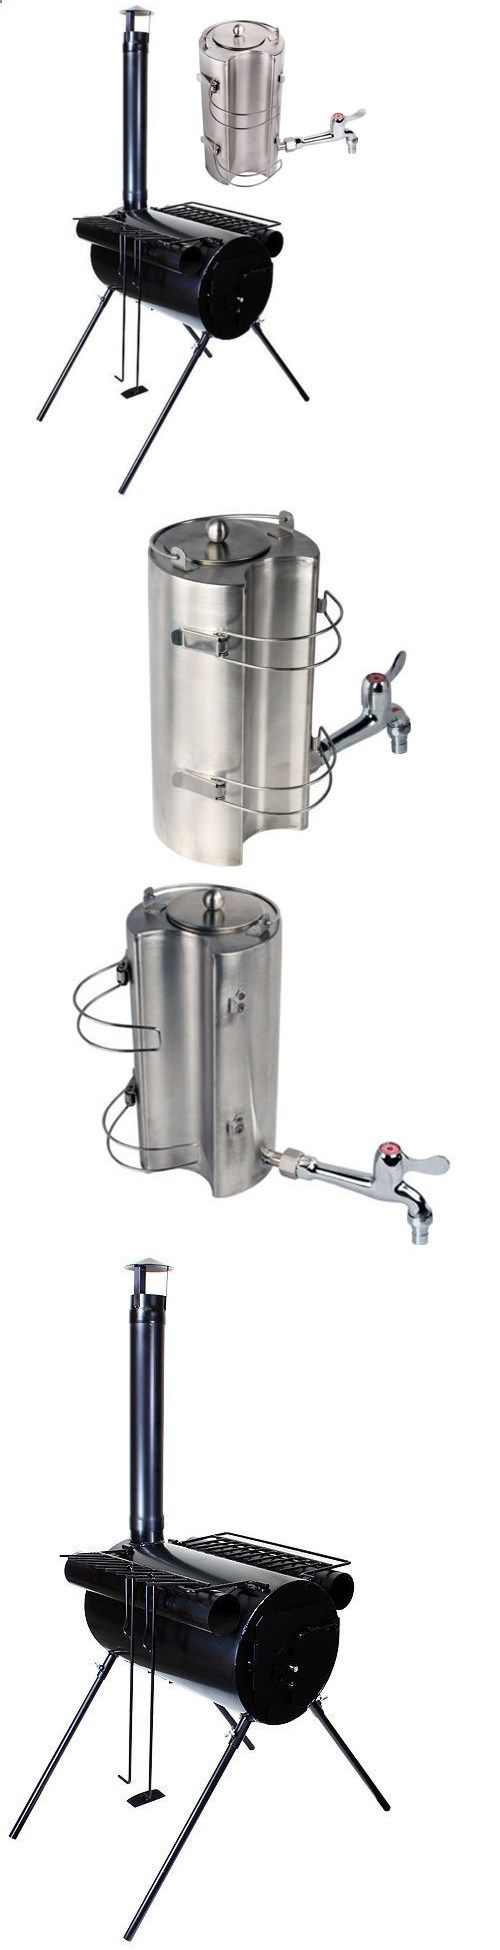 Camping Kettle - Camping Stoves 181386: Portable Military Camping Ice Fishing Cook Wood Stove Tent Heater Water Kettle -> BUY IT NOW ONLY: $57.95 on eBay!